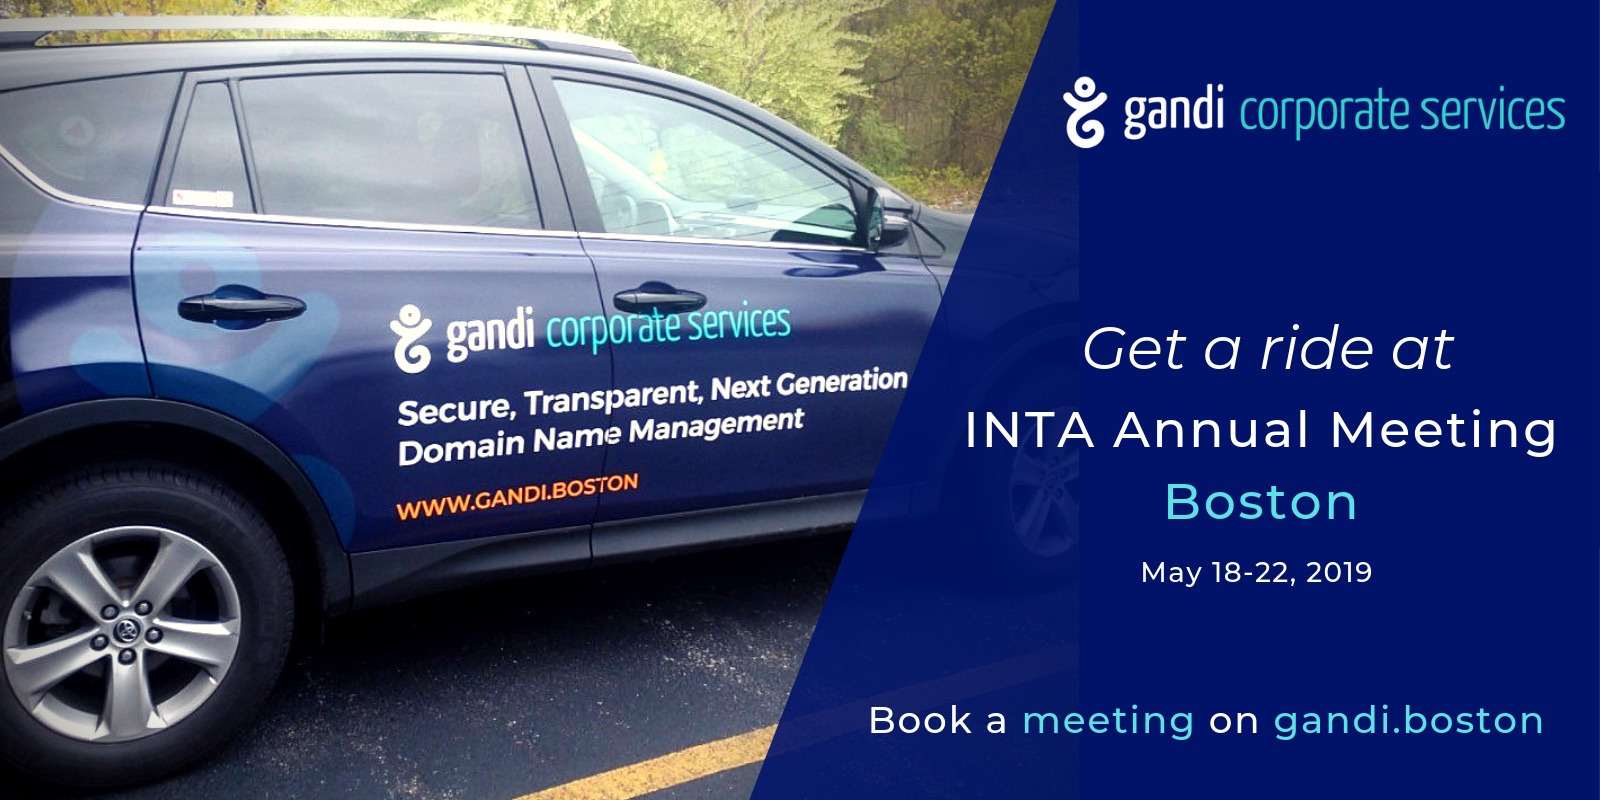 Get a ride at INTA with Gandi Corporate Services!